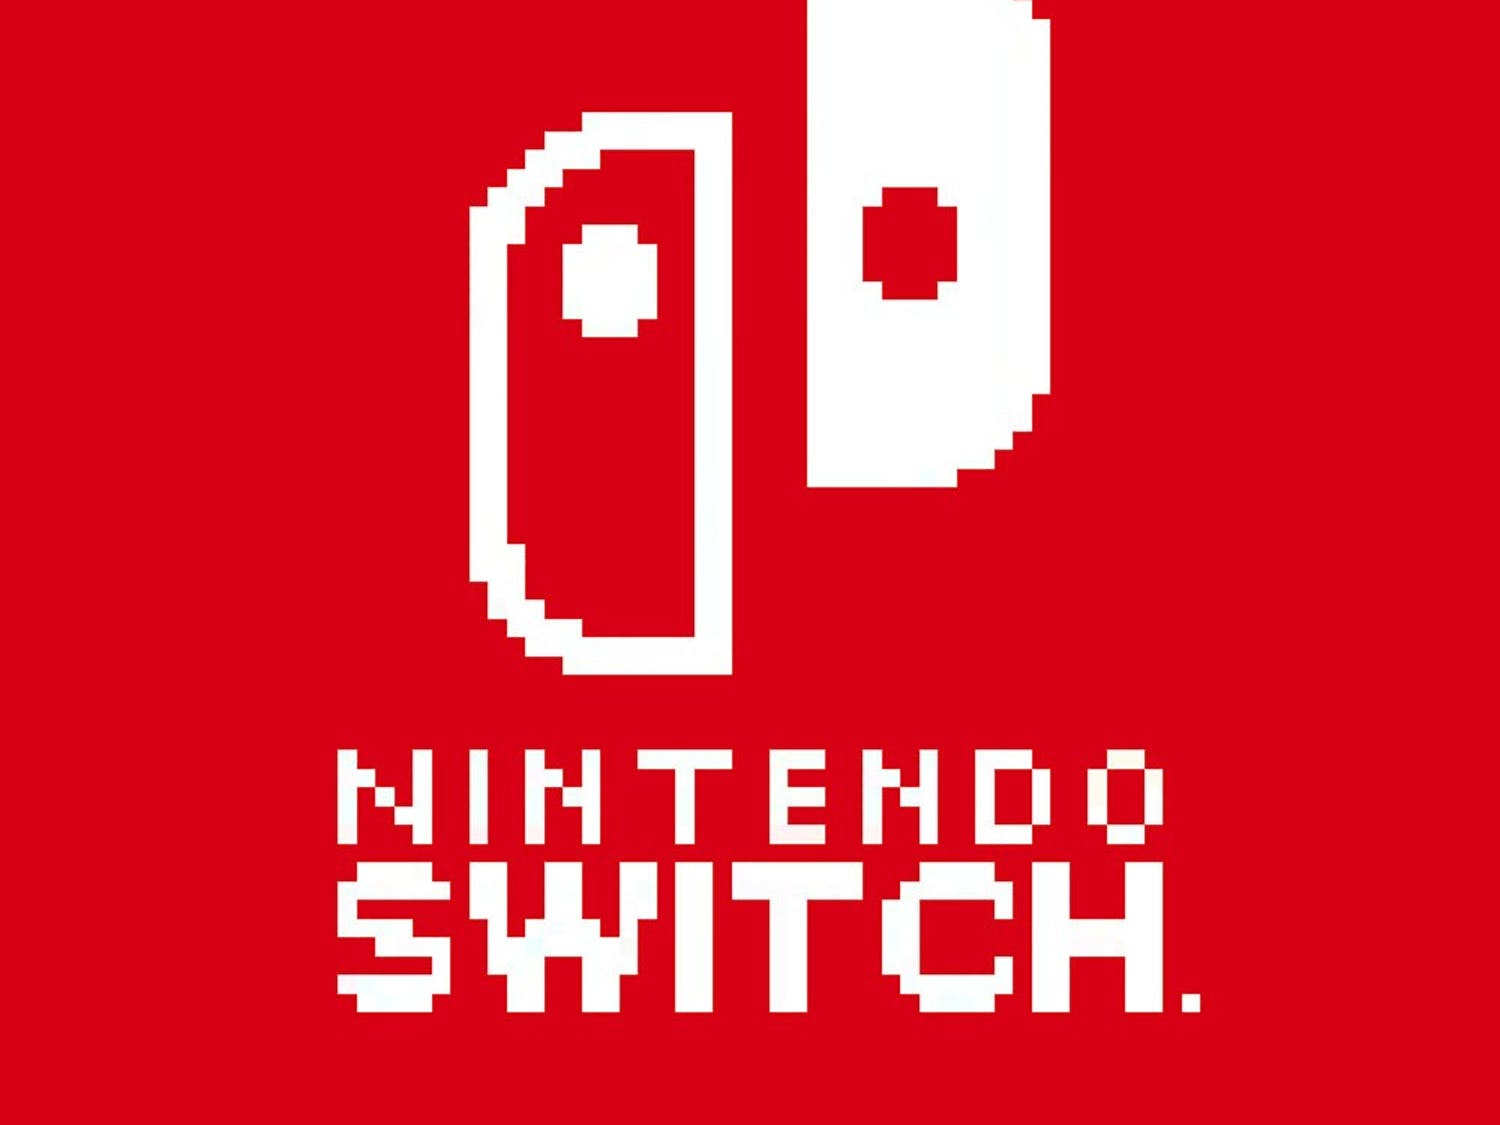 The Switch is the newest game systemfrom Nintendo, released earlier this month. It combines handheld and home console gaming with a convertible controller and a portable six-inch screen which can be connectedto a TV for big-screen playability.